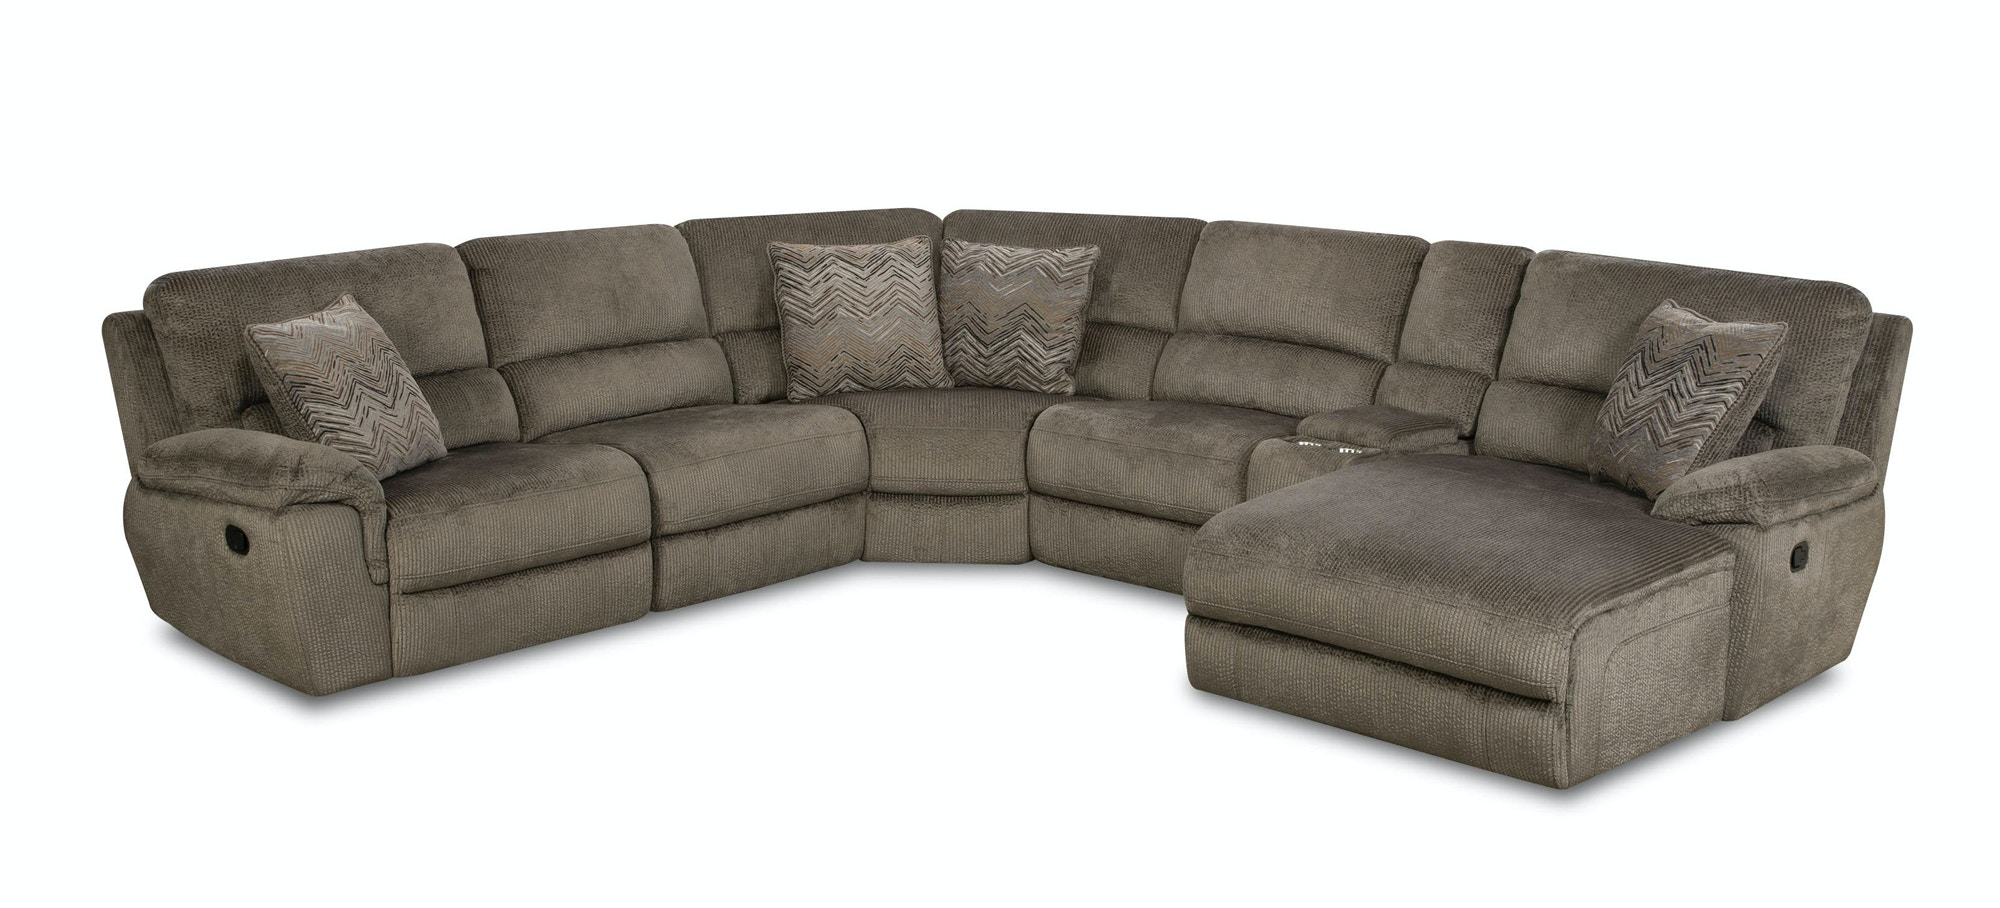 Corinthian Reilly Grand Power Sectional 332366  sc 1 st  Furniture Fair : sectional sofas cincinnati - Sectionals, Sofas & Couches